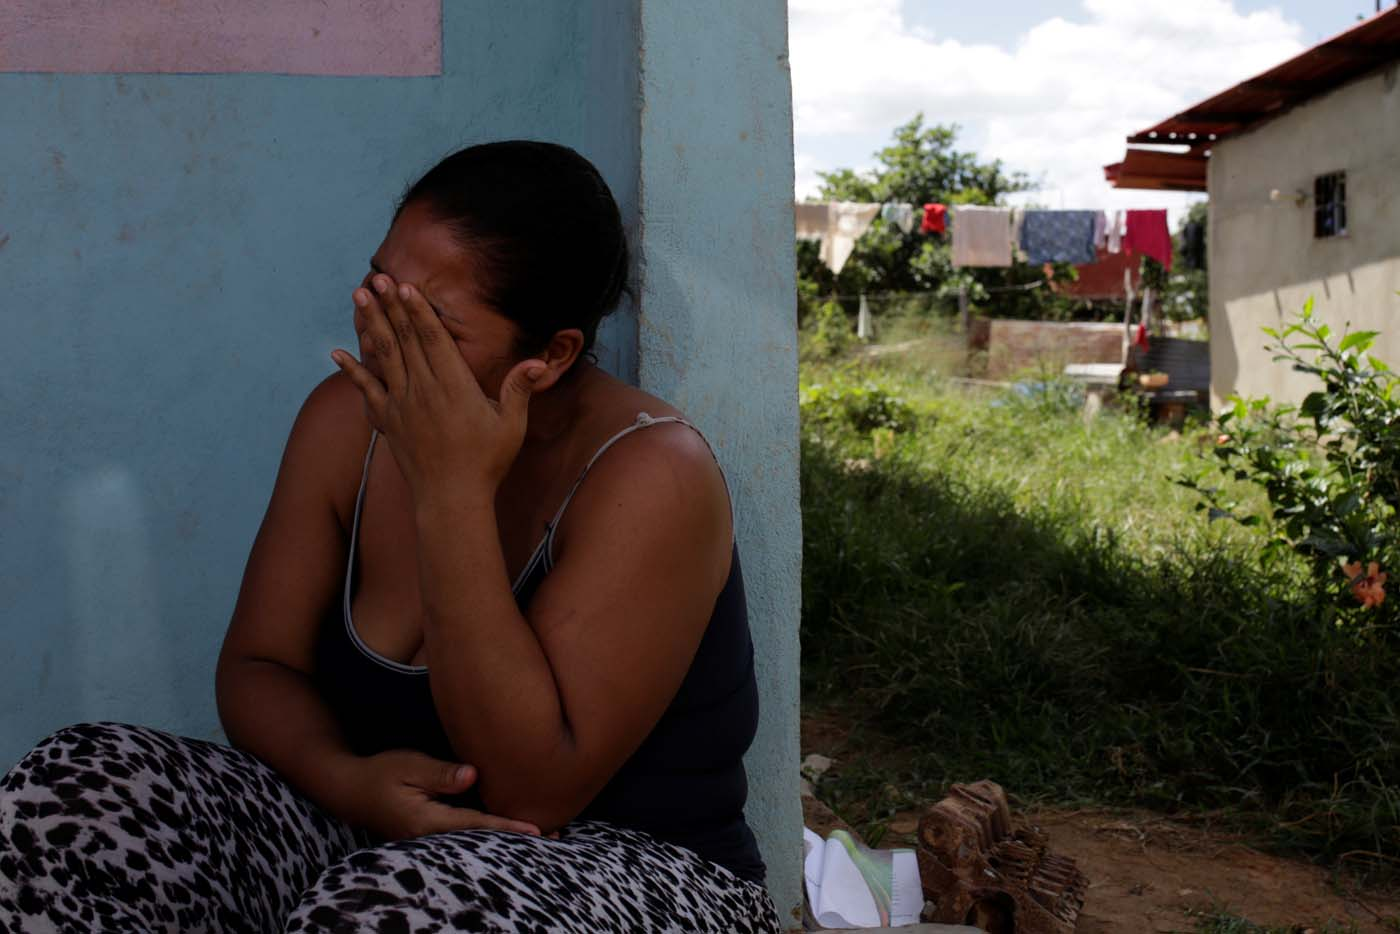 Jennifer Vivas, mother of Eliannys Vivas, who died from diphtheria, cries at the front porch of her home in Pariaguan, Venezuela January 26, 2017. Picture taken January 26, 2017. REUTERS/Marco Bello